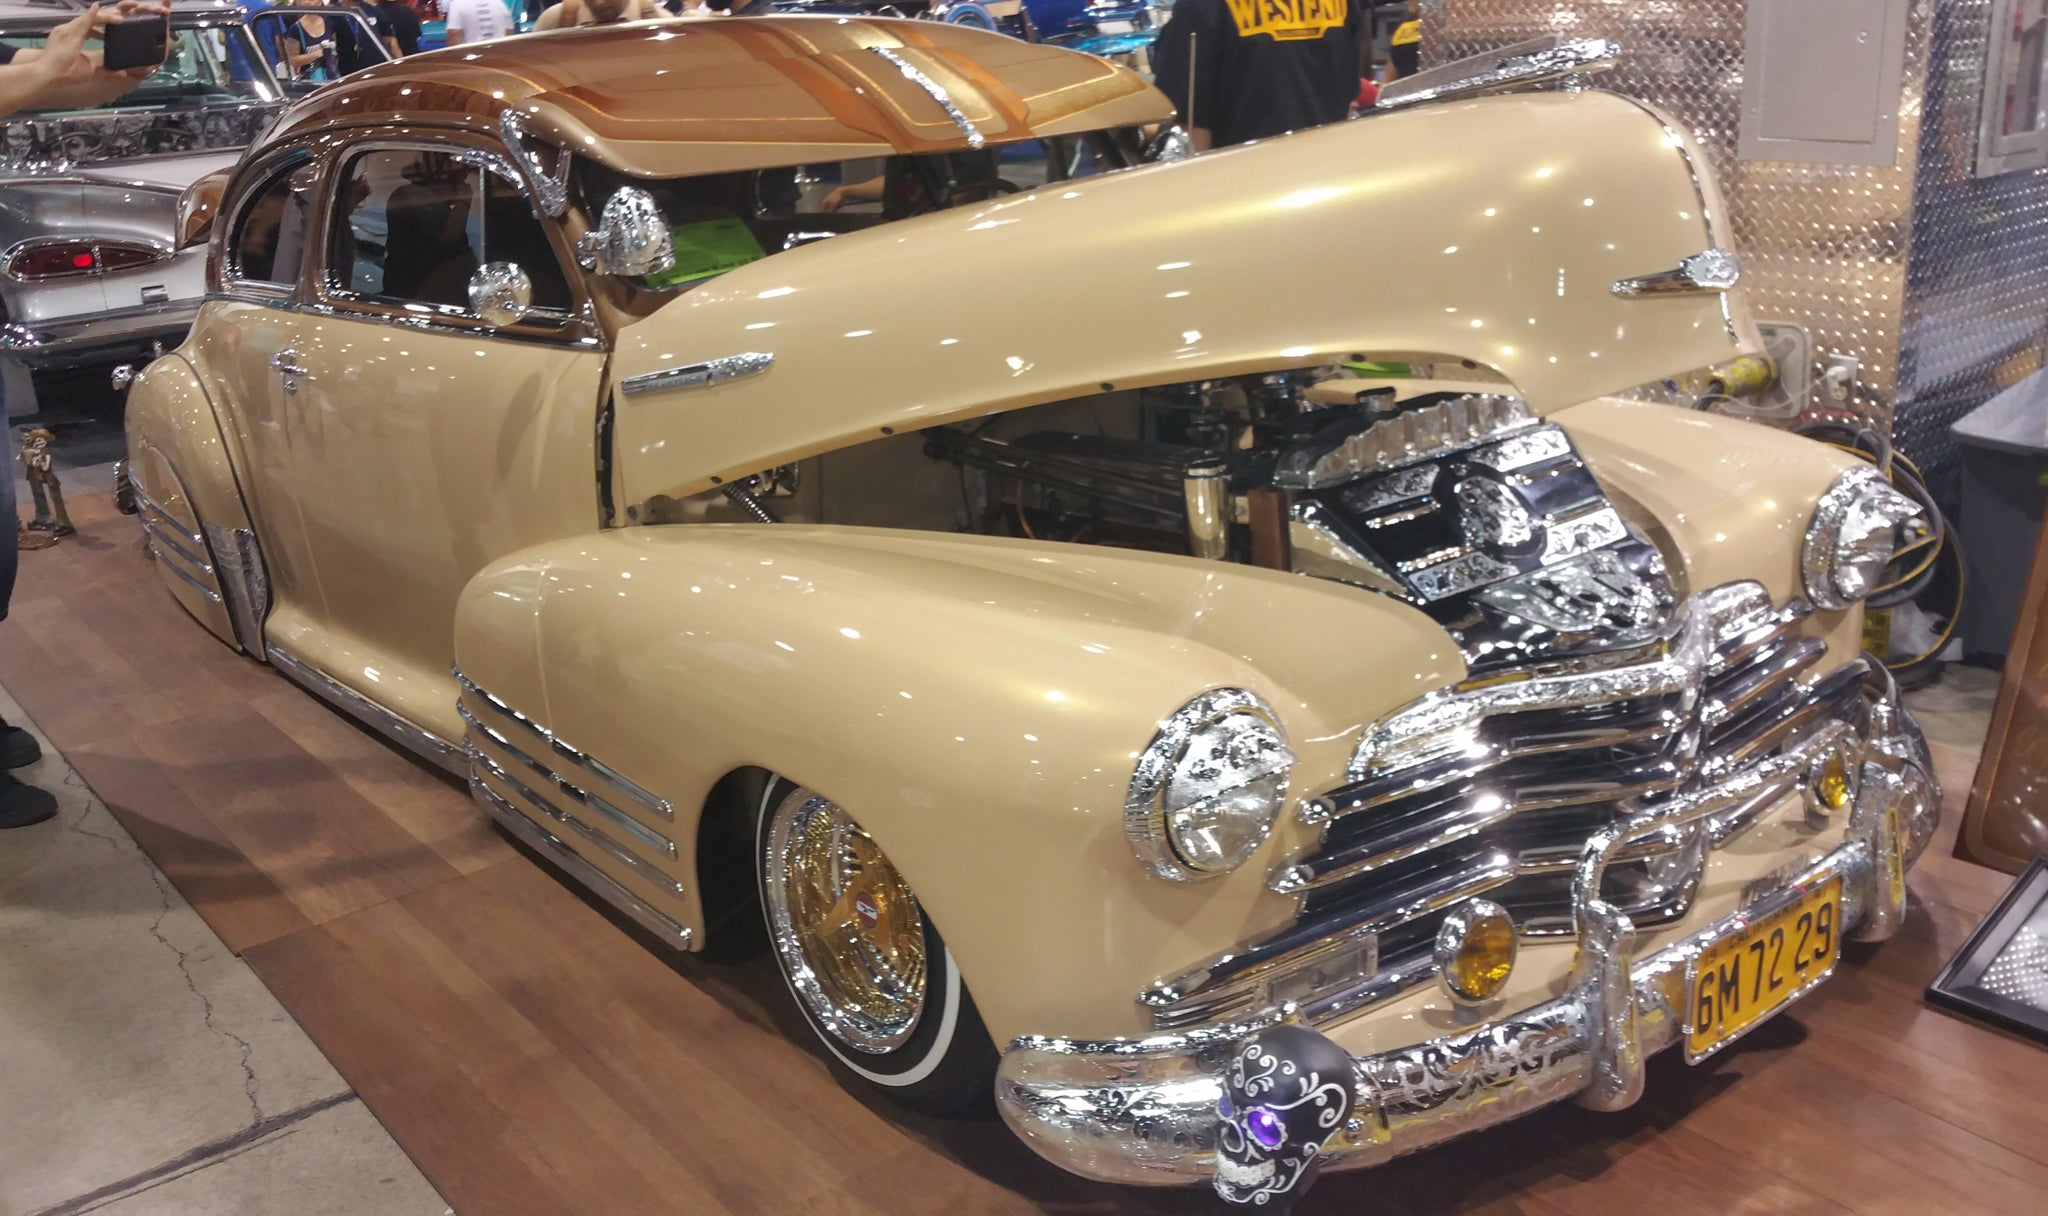 Lowrider Super Show Gunthers Supply And Goods - Lowrider car show las vegas